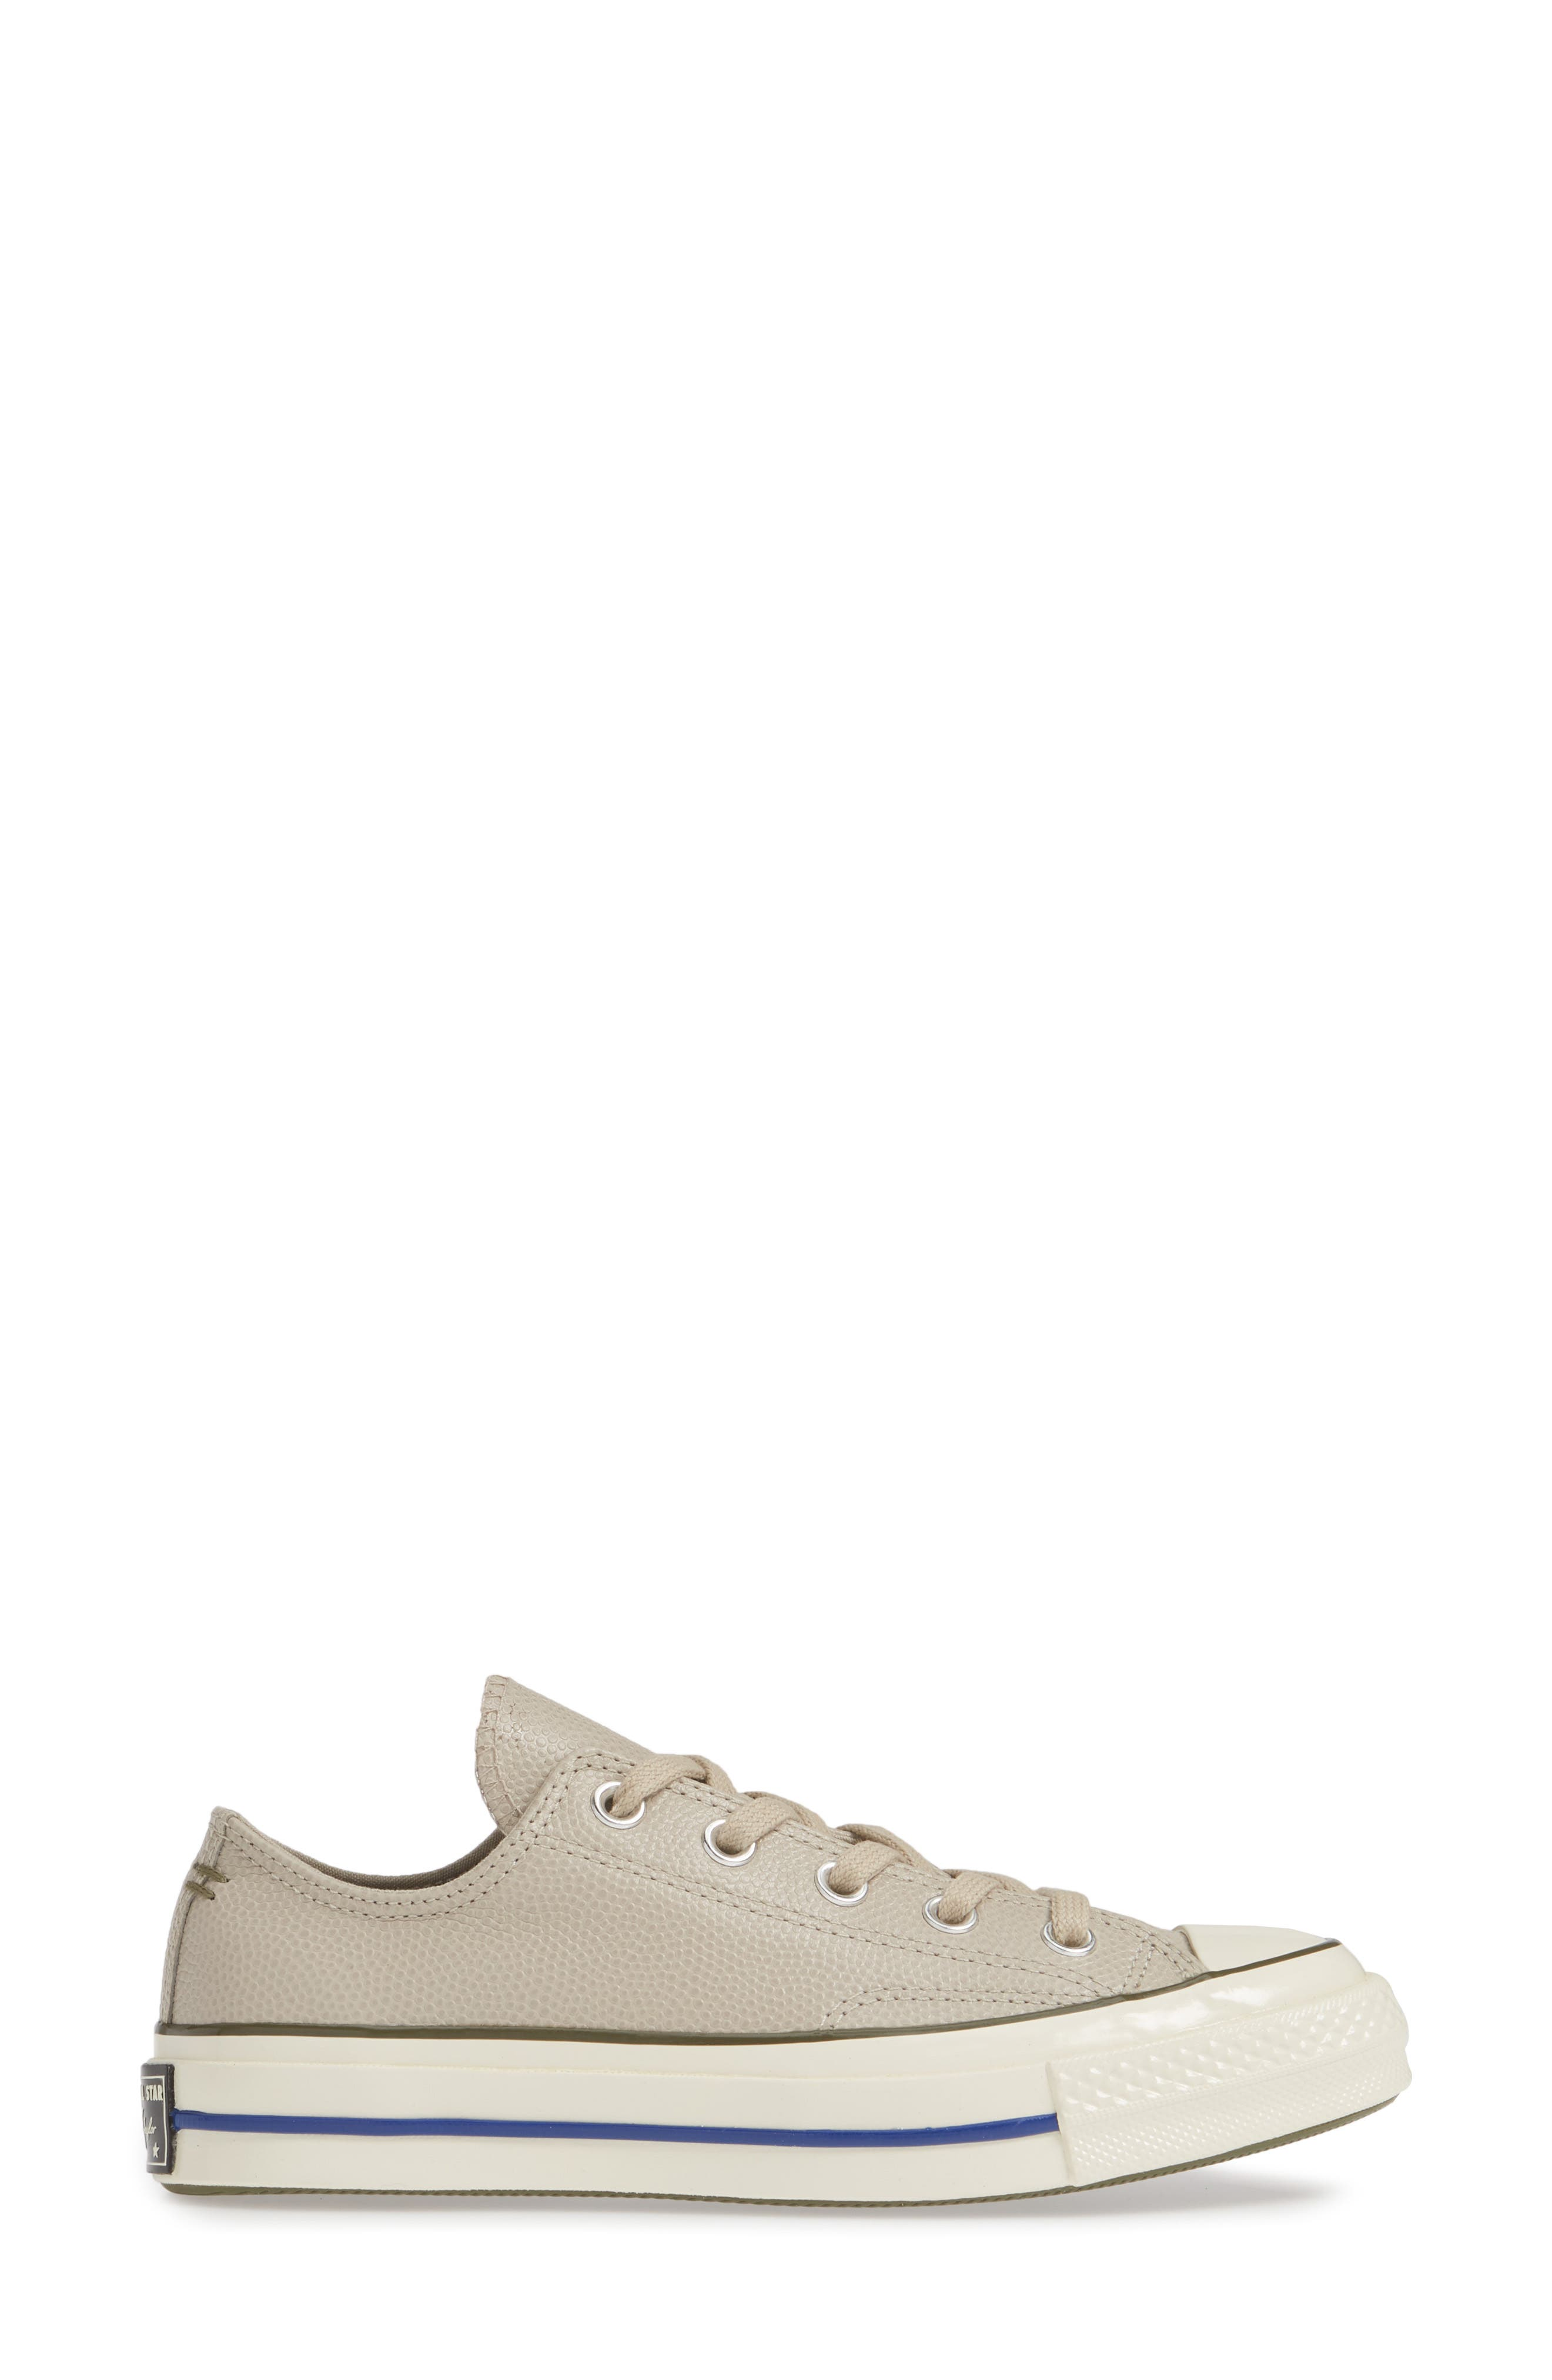 CONVERSE, Chuck Taylor<sup>®</sup> All Star<sup>®</sup> Chuck 70 Ox Leather Sneaker, Alternate thumbnail 3, color, PAPYRUS/ FIELD SURPLUS/ EGRET